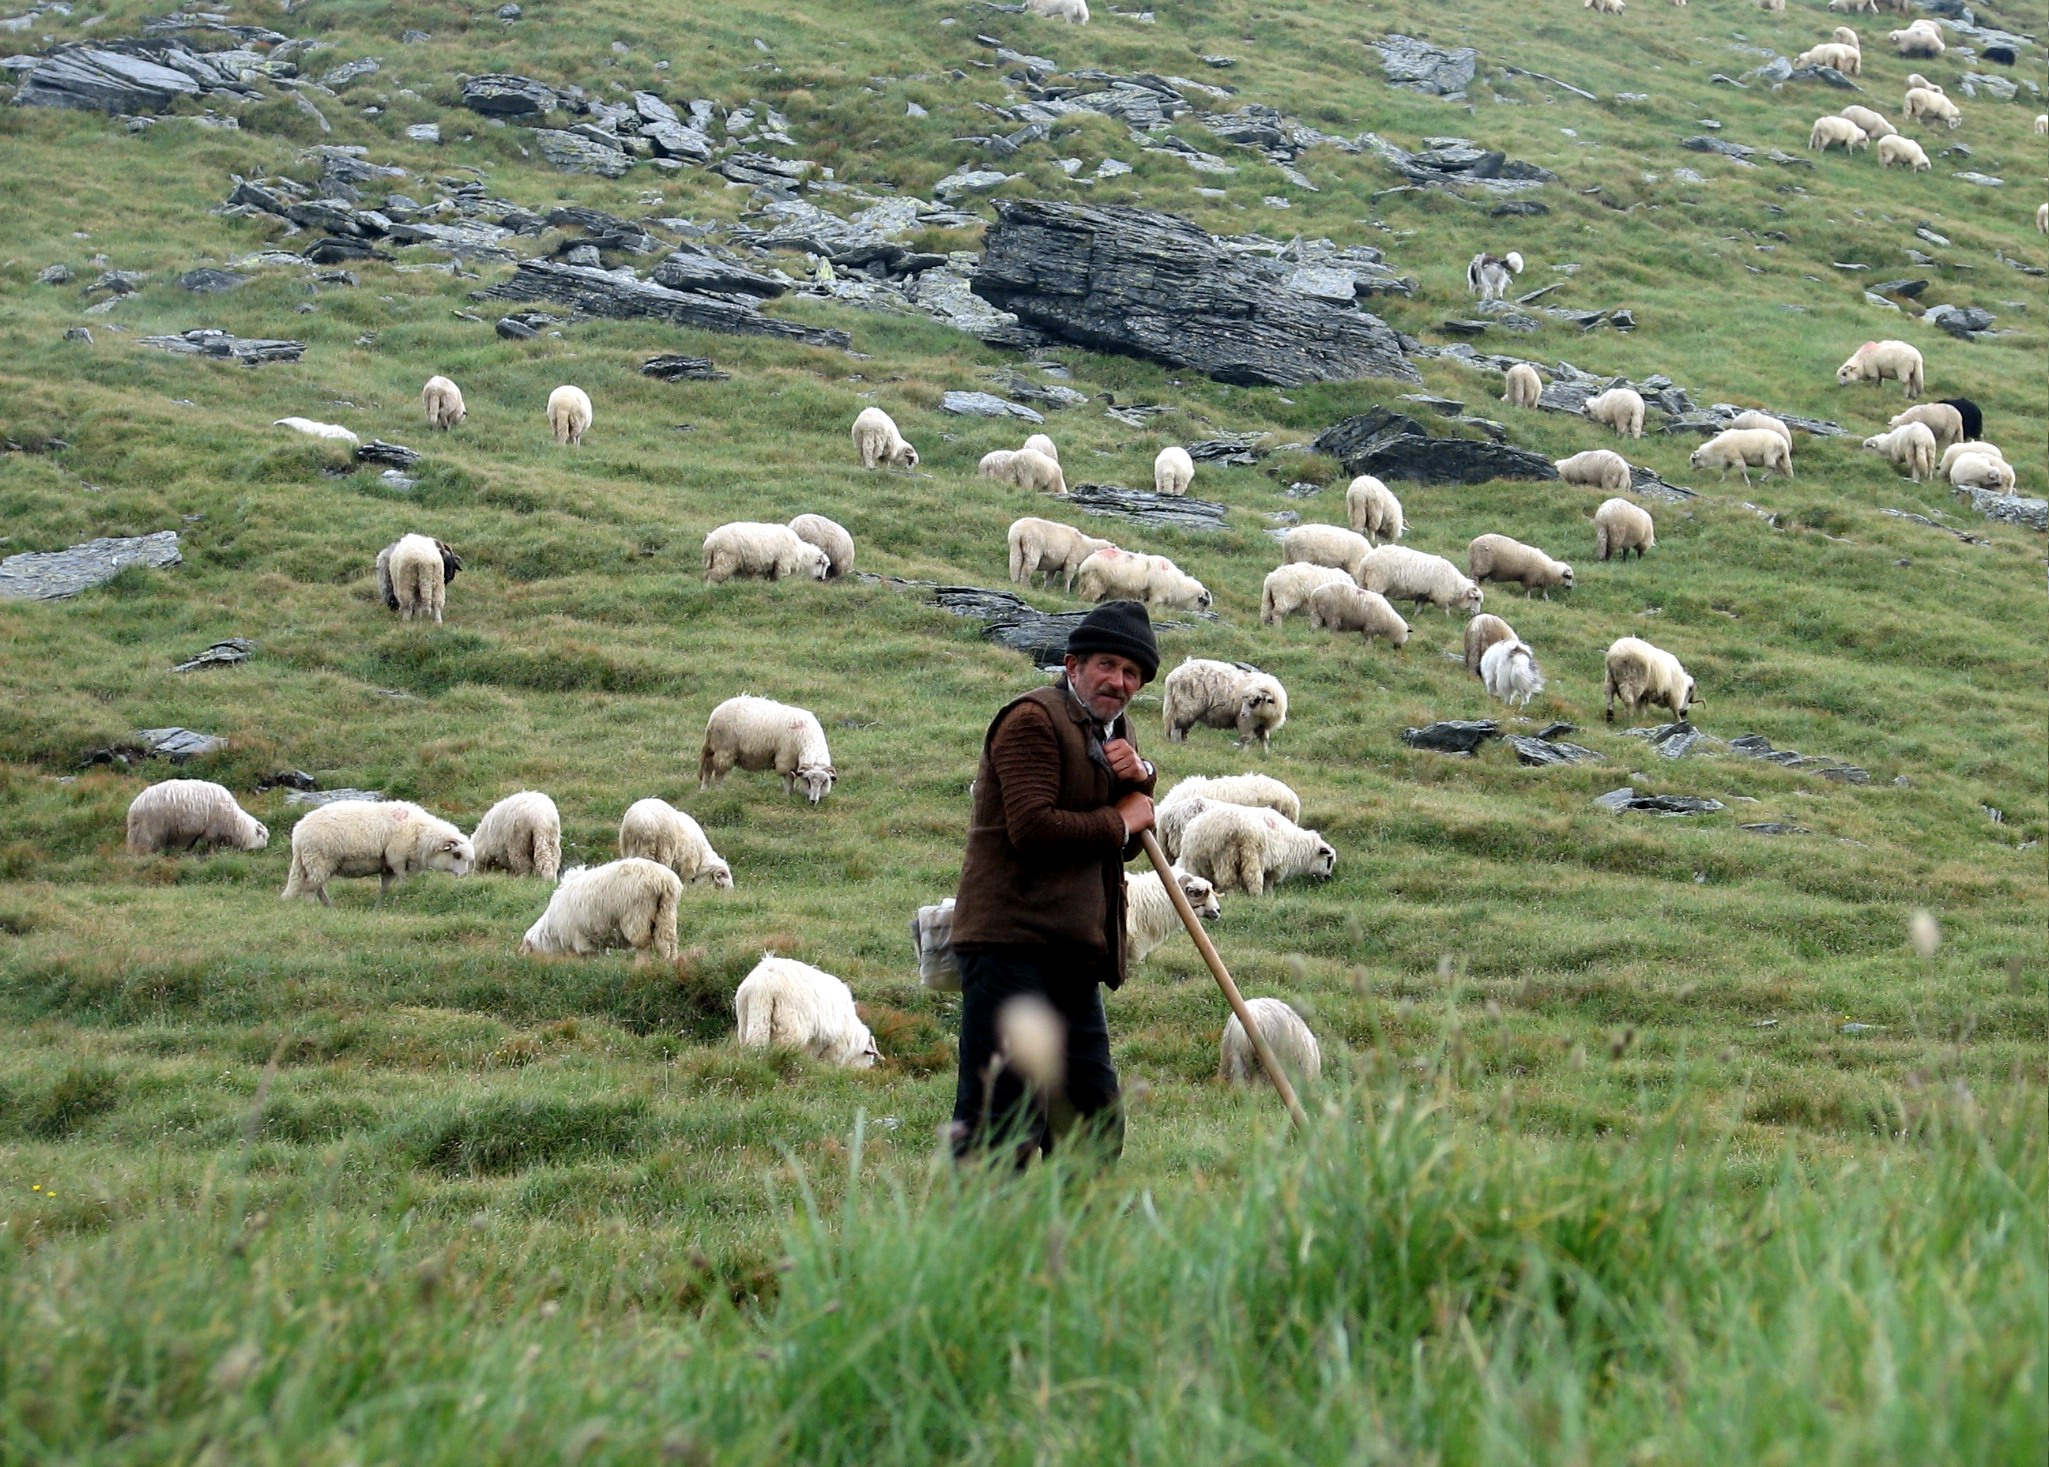 Shepherd in Făgăraş Mountains, Romania - photo found on Wiki Commons and attributable to friend of Darwinek